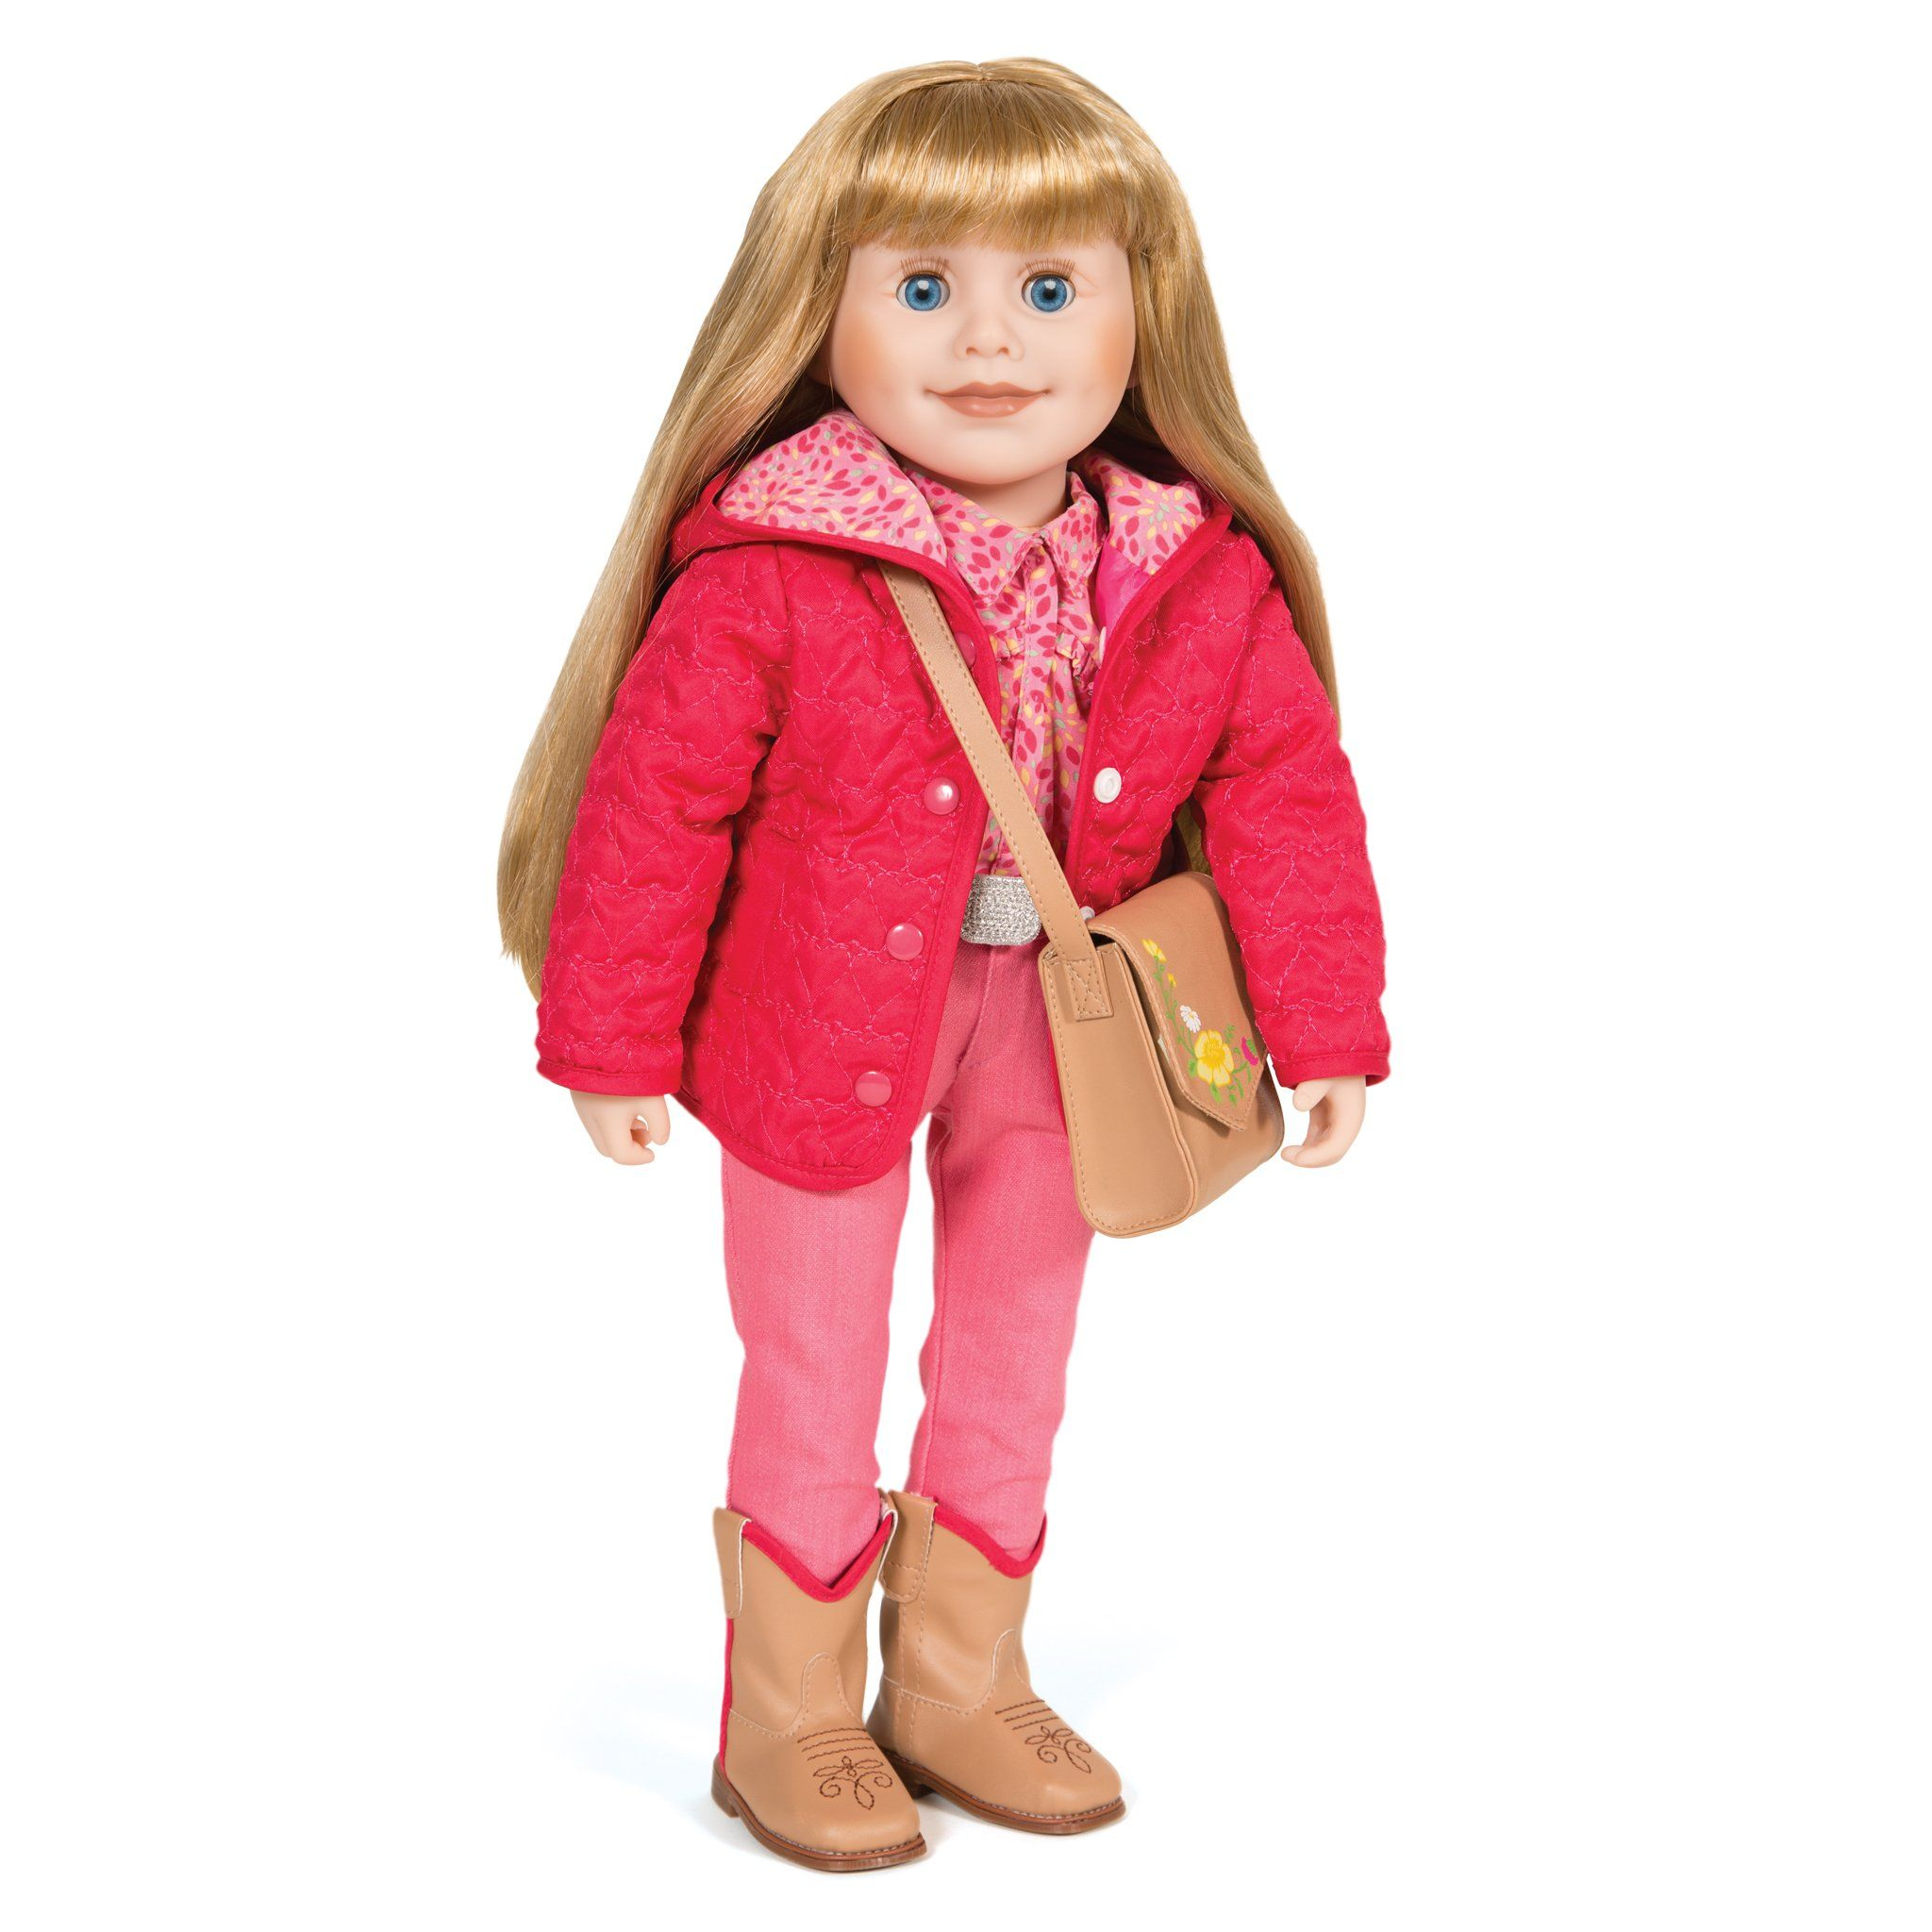 Out and About bright pink quilted hooded jacket and tan saddle bag with flower graphic fits all1 18 inch dolls.